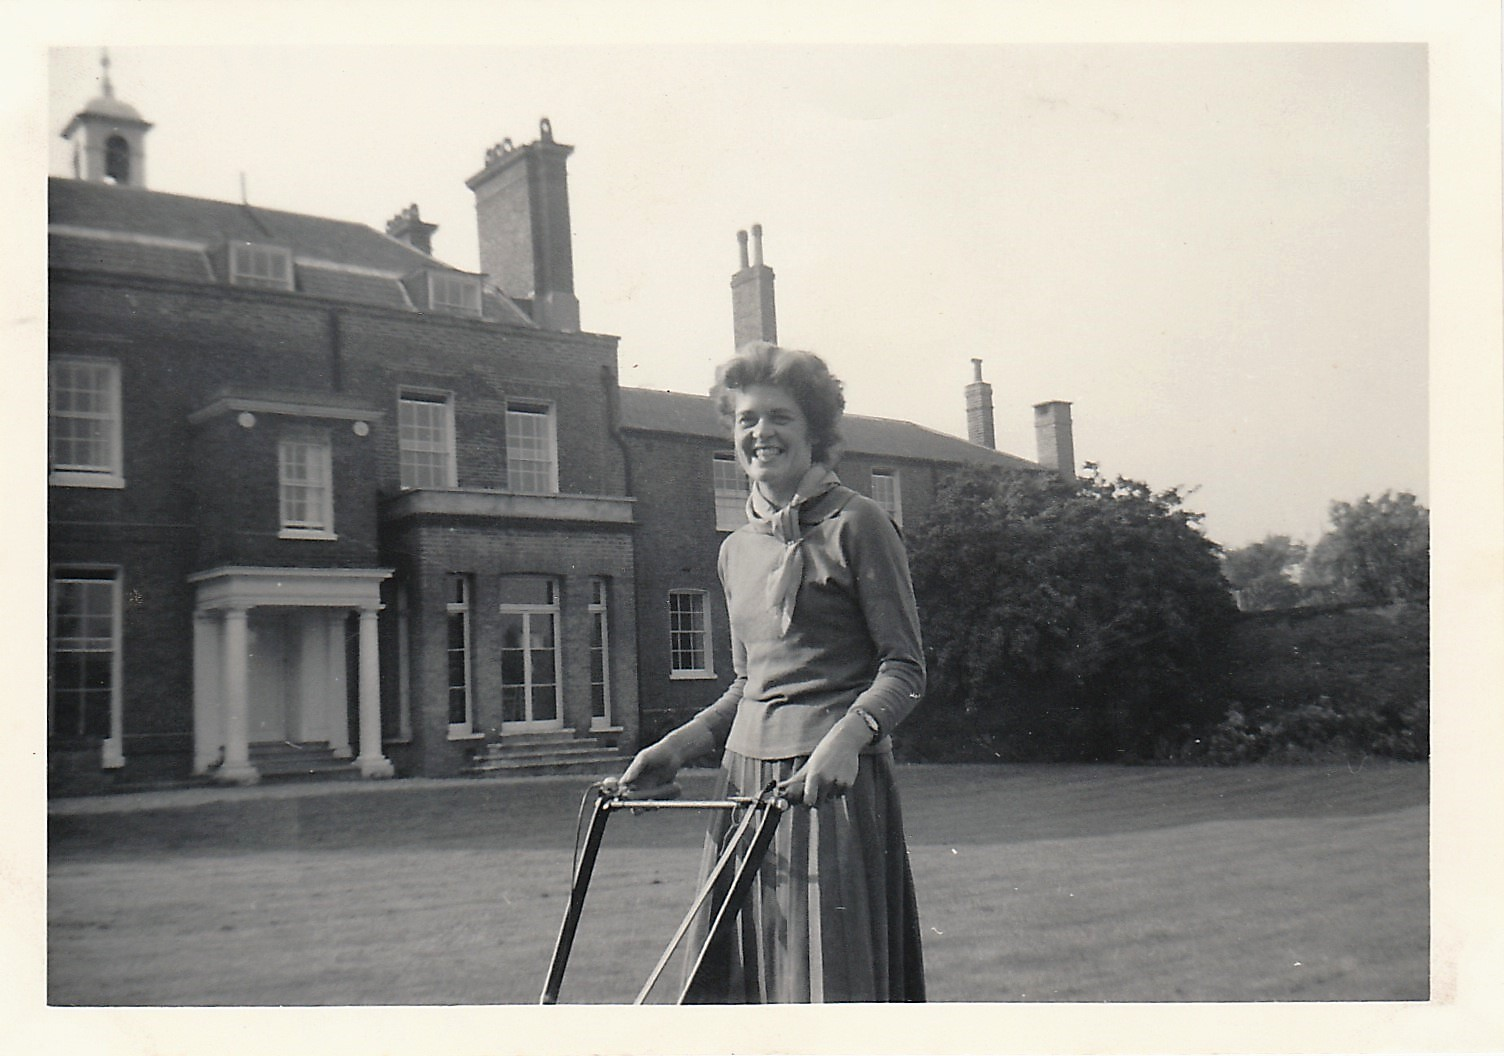 Patricia Knight mowing the lawn. Source: Cheryl Spray